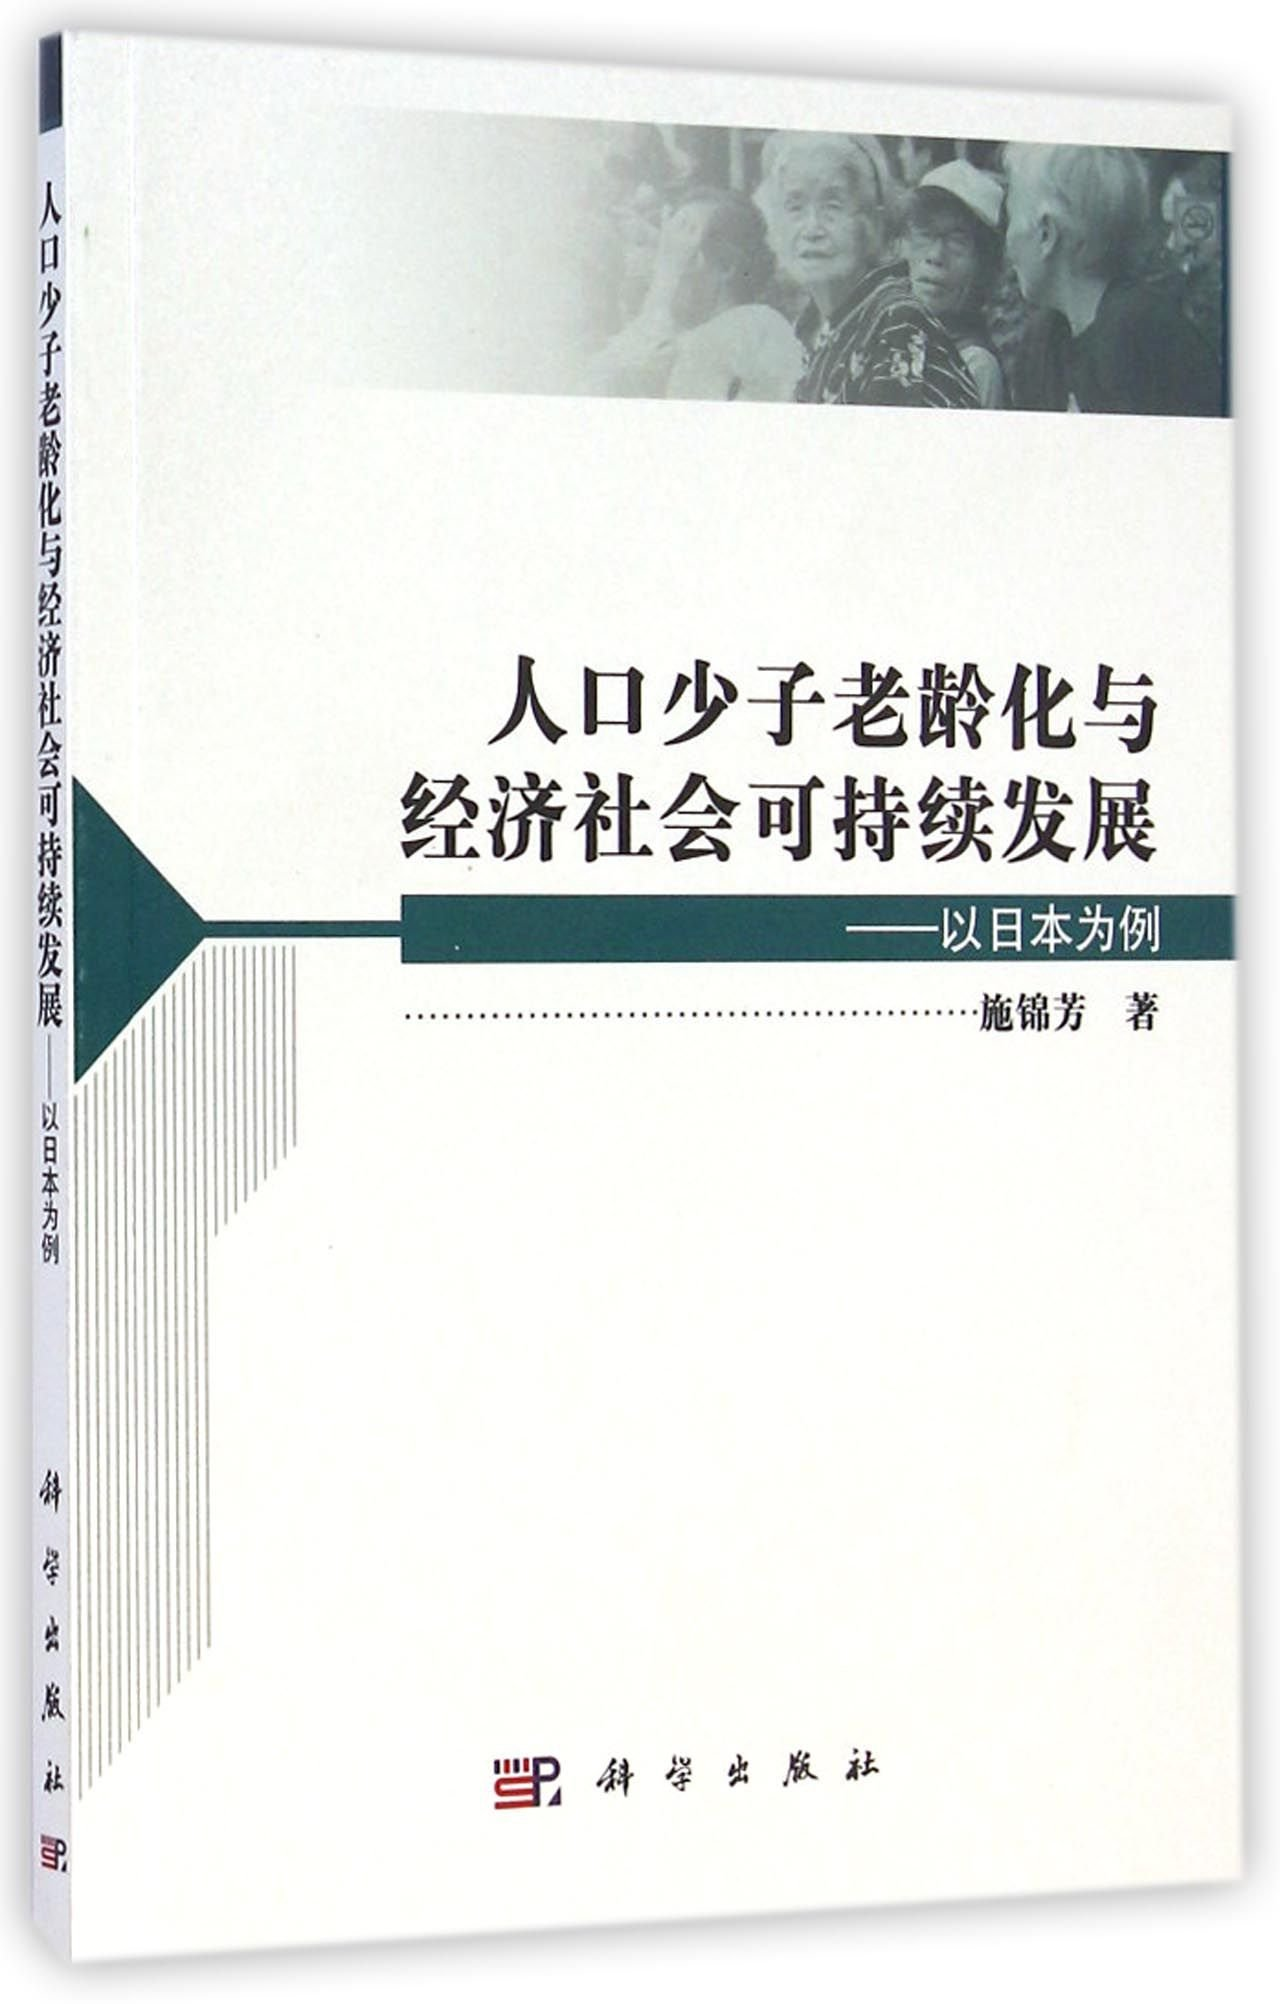 Aging Population with Low Birth Rate and Economic Society Sustainable Development - Take Japan for Example (Chinese Edition) pdf